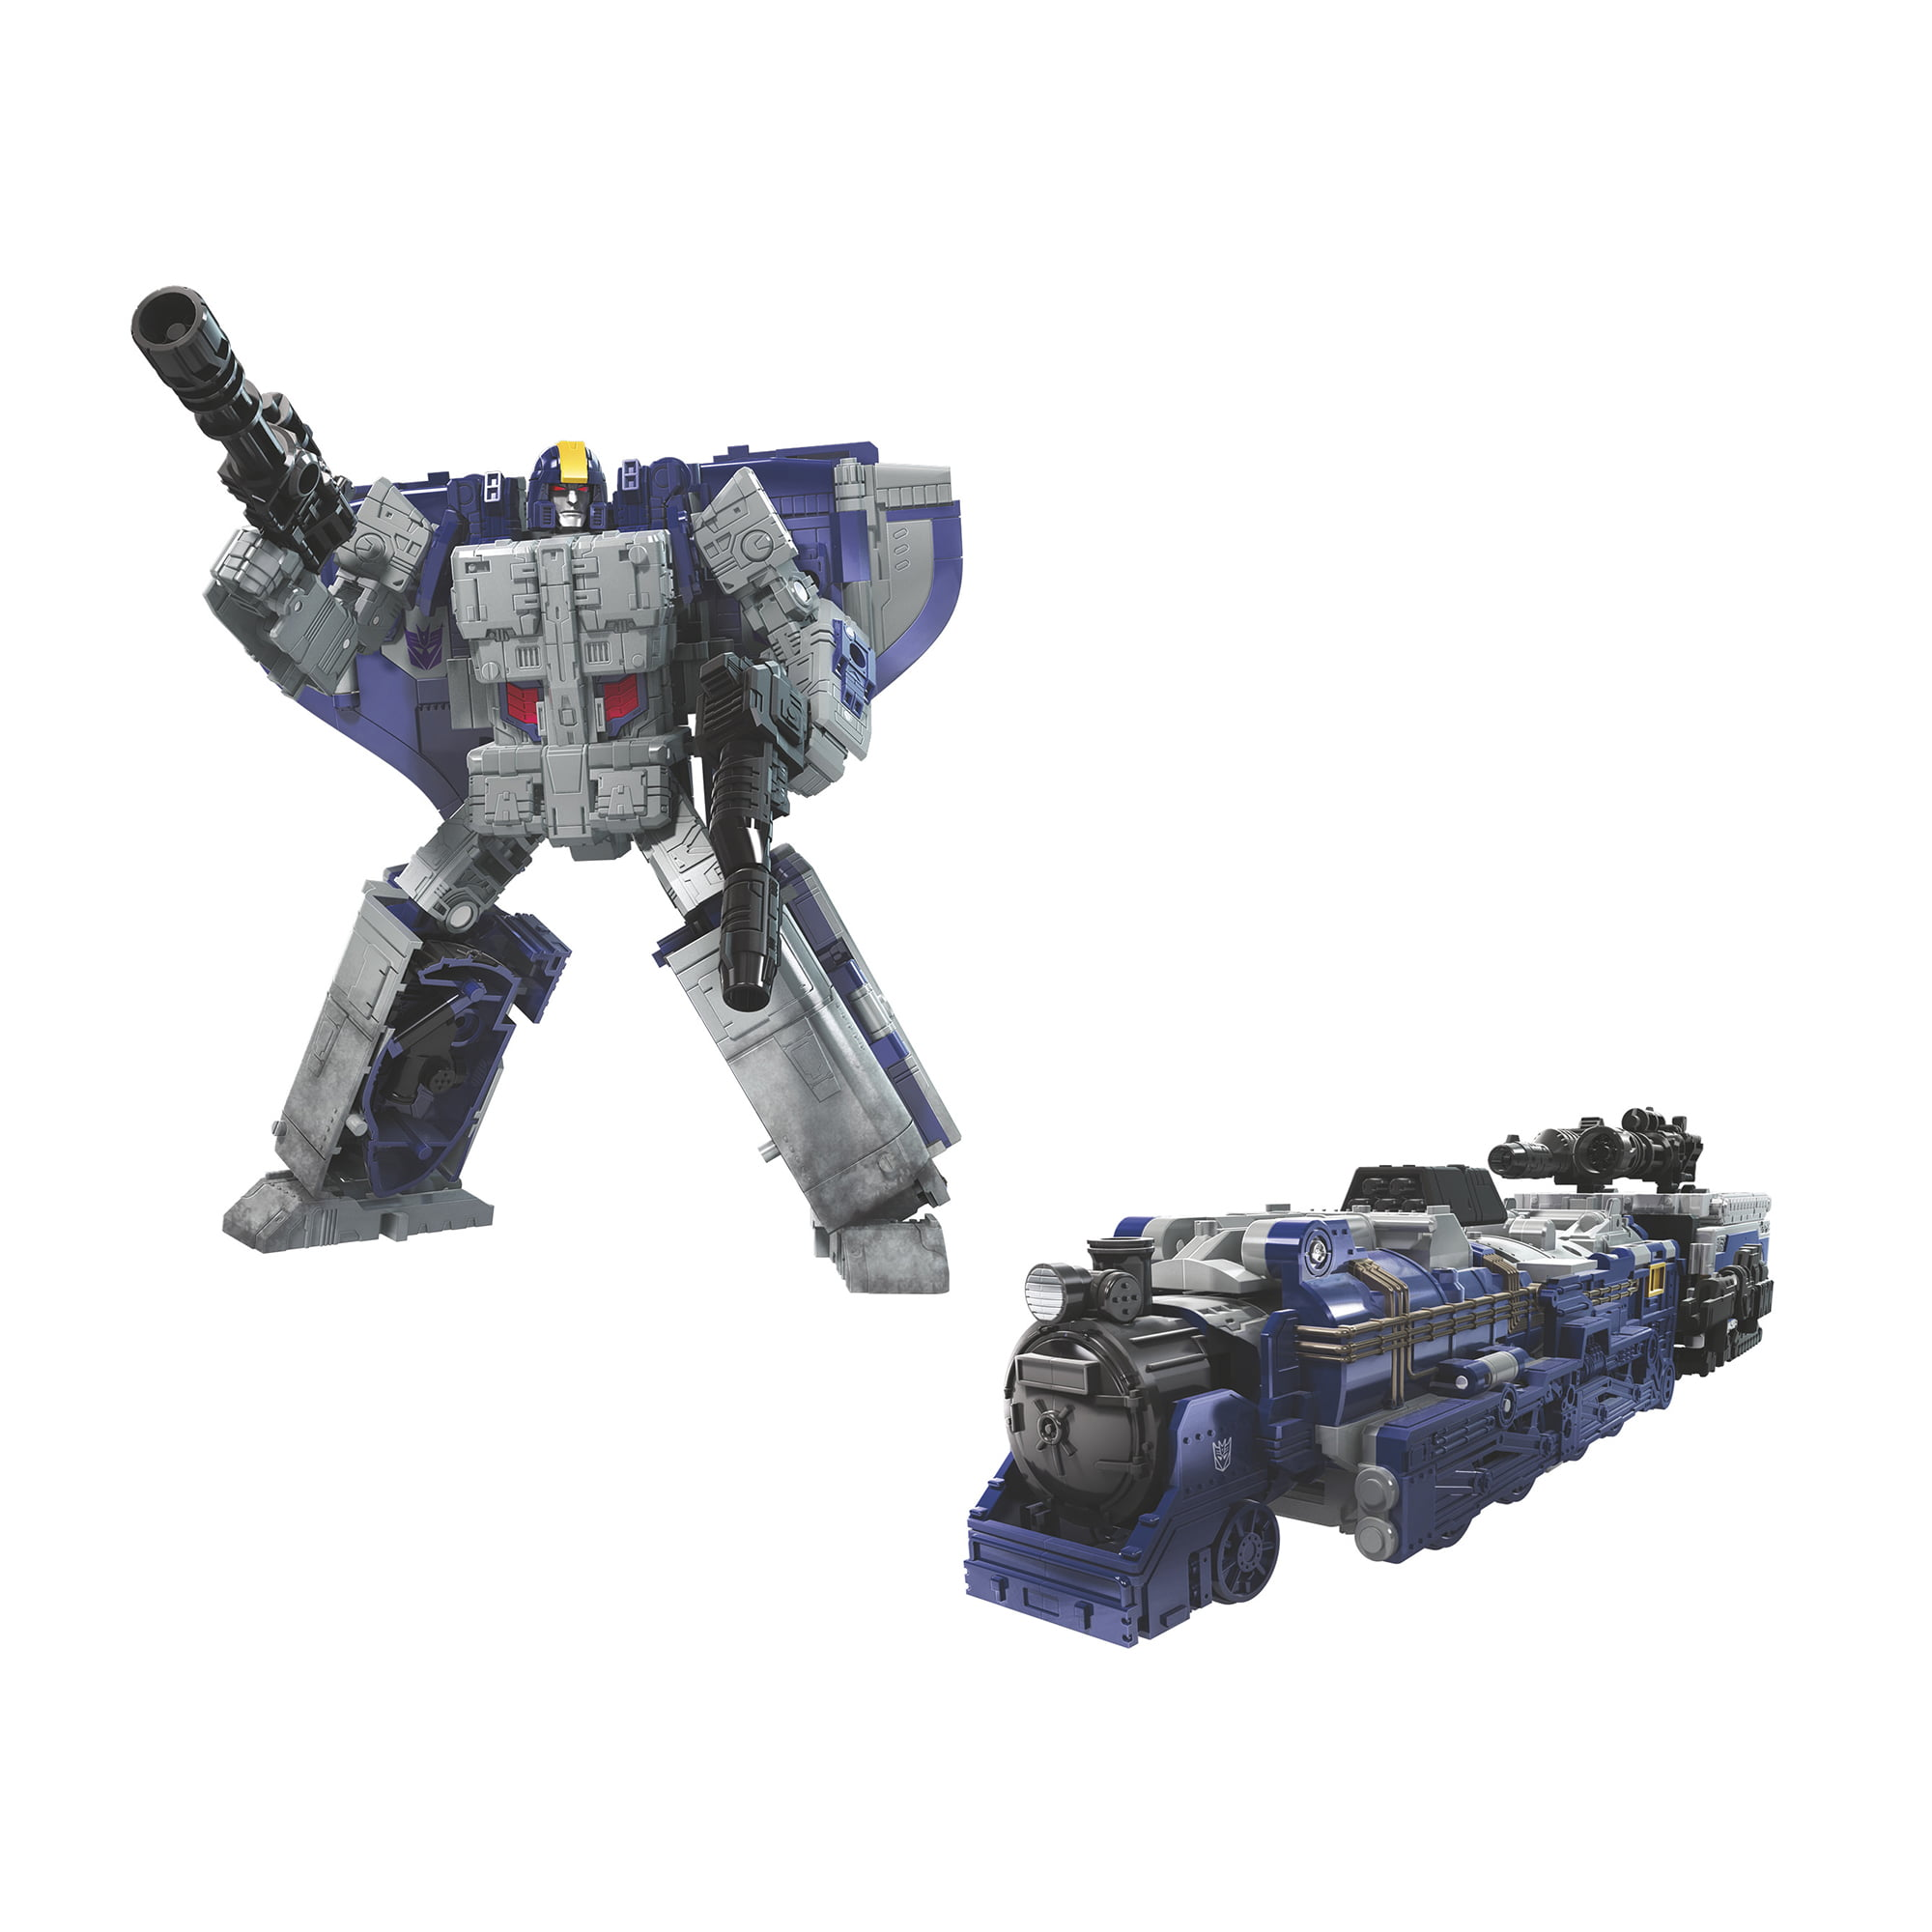 Transformers Generations War for Cybertron WFC-S51 Astrotrain Action Figure by Hasbro